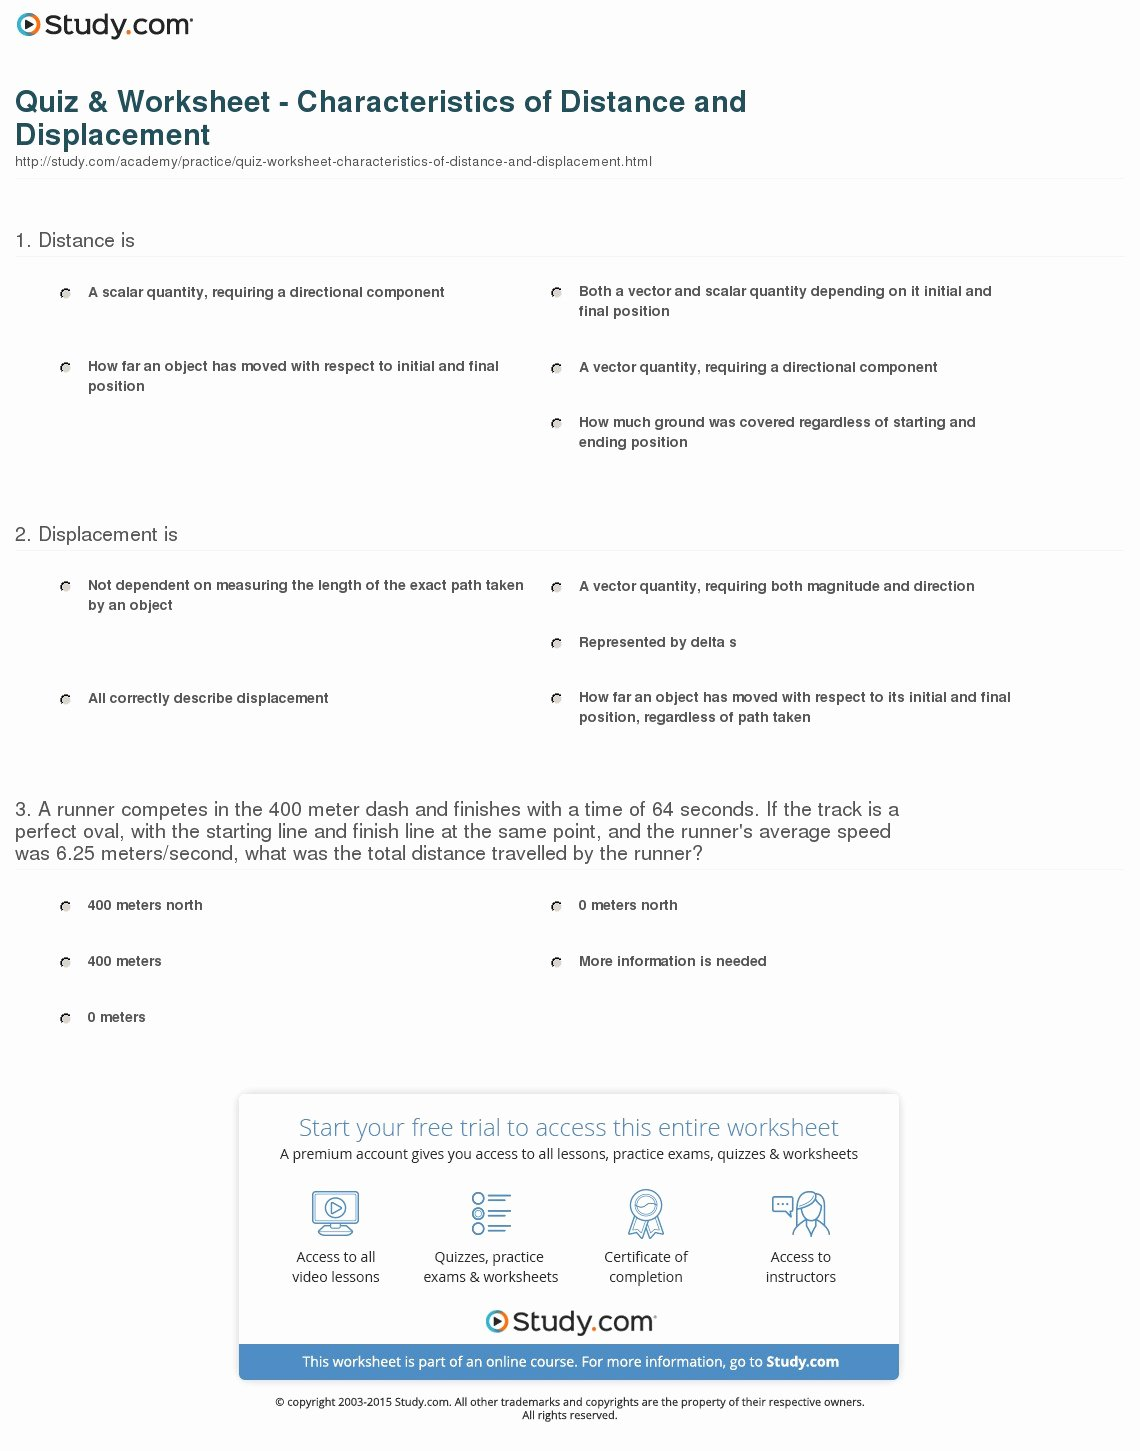 Distance and Displacement Worksheet Answers Luxury Quiz & Worksheet Characteristics Of Distance and